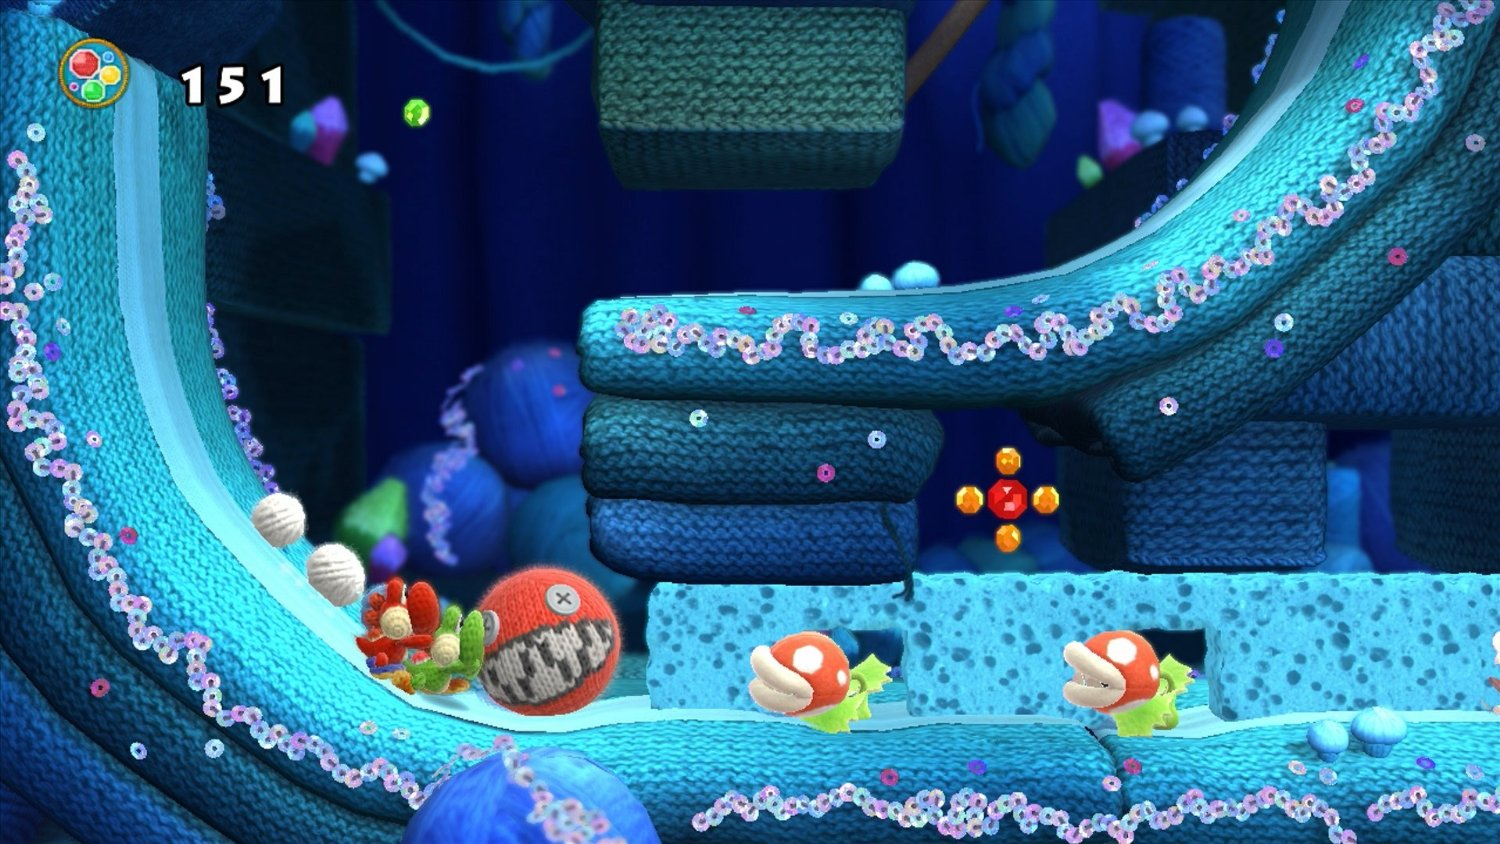 Yoshi's Woolly World Wii U Review Screenshot 3